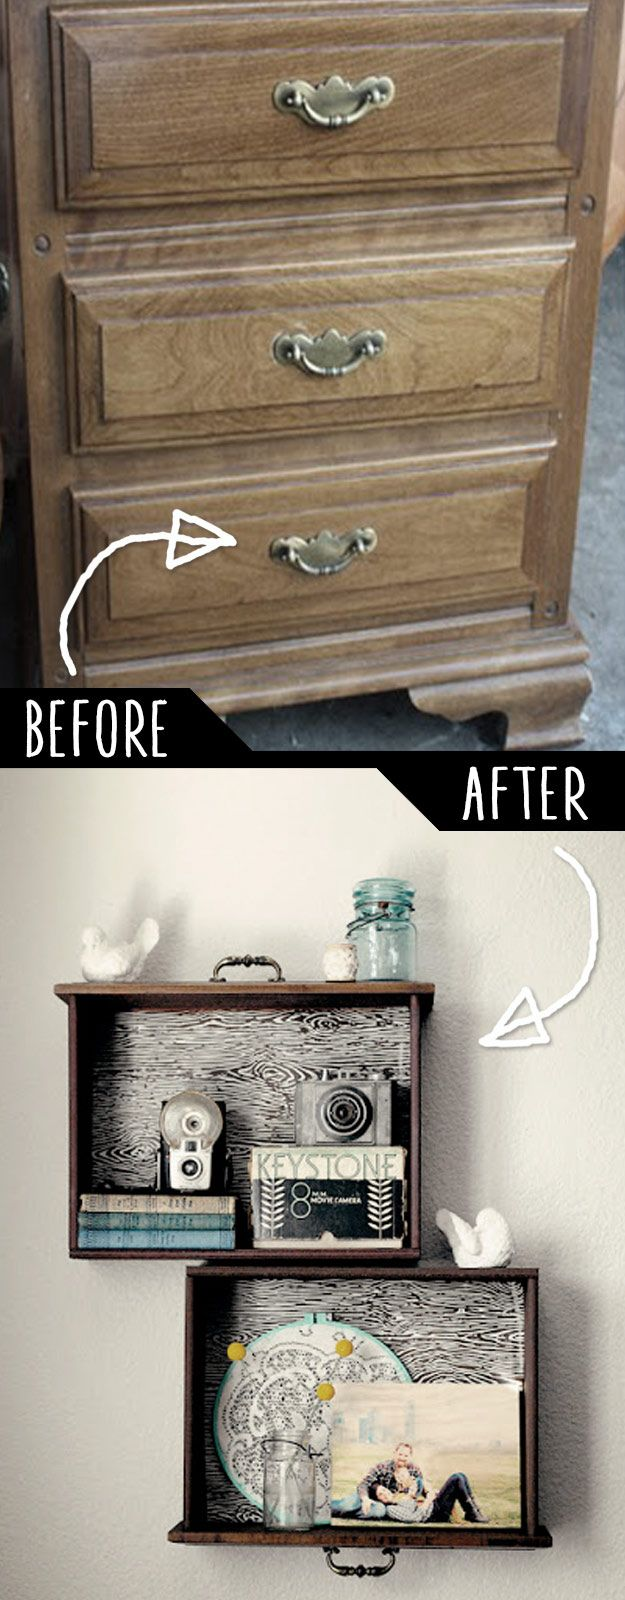 39 Clever DIY Furniture Hacks  Cheap Diy Decor HomeCheap. 39 Clever DIY Furniture Hacks   Creative  Furniture and Living